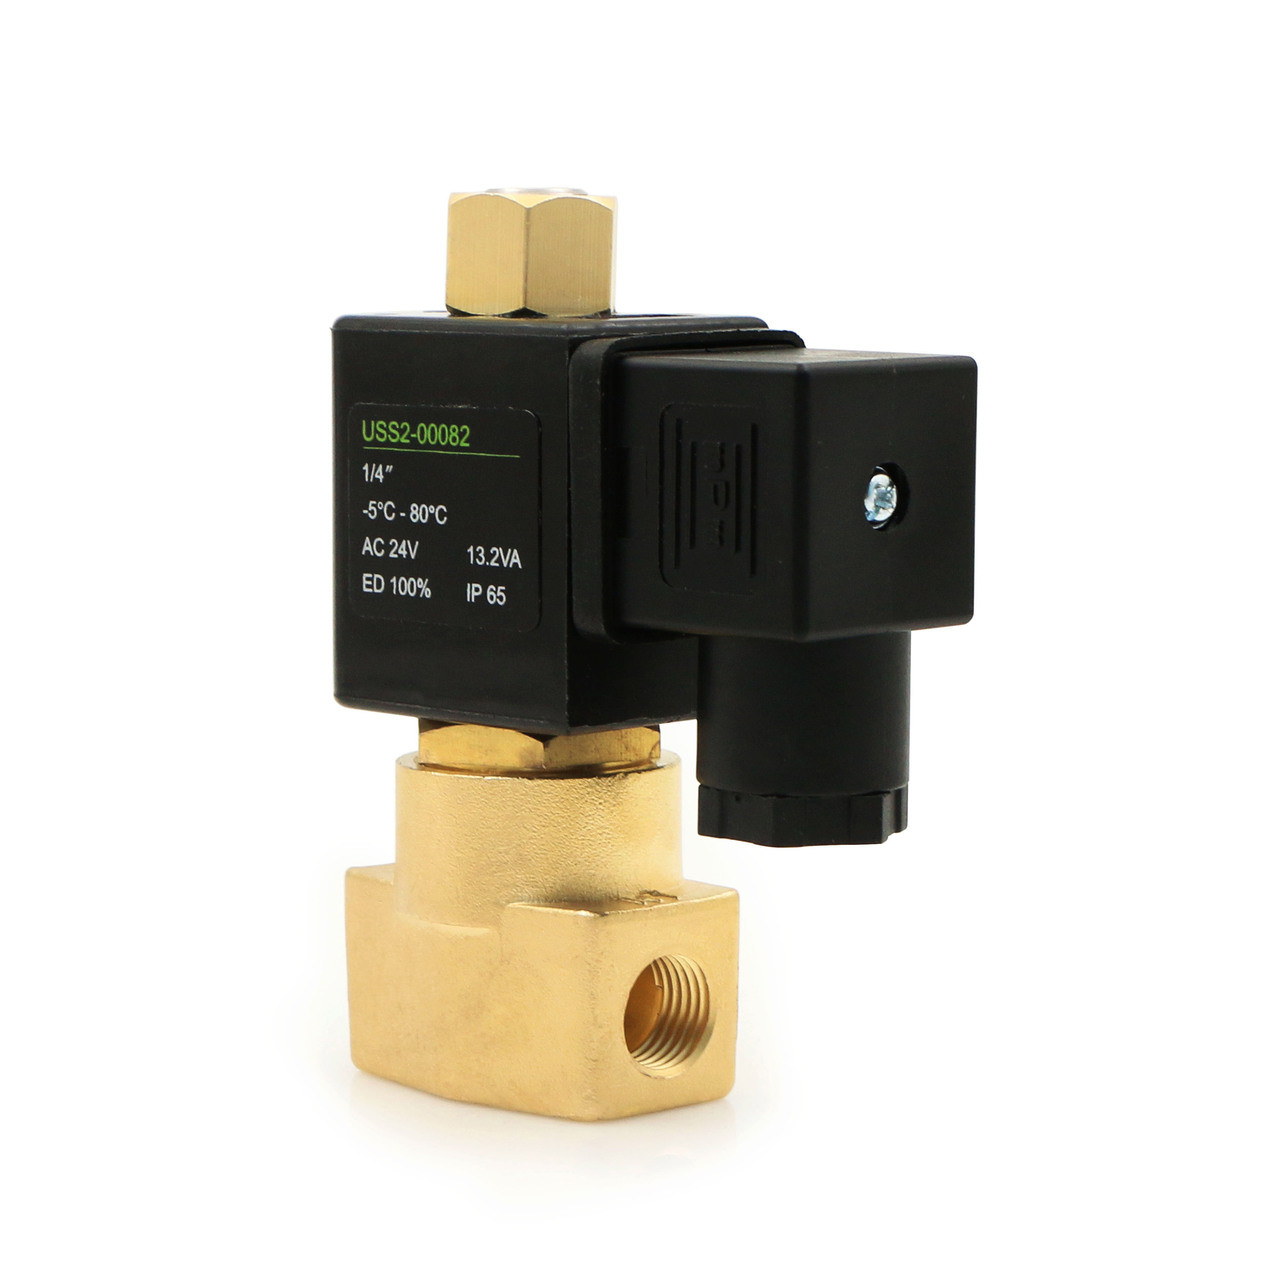 "U.S. Solid Electric Solenoid Valve- 1/4"" 24V AC Solenoid Valve Brass Body Normally Open, NBR SEAL"